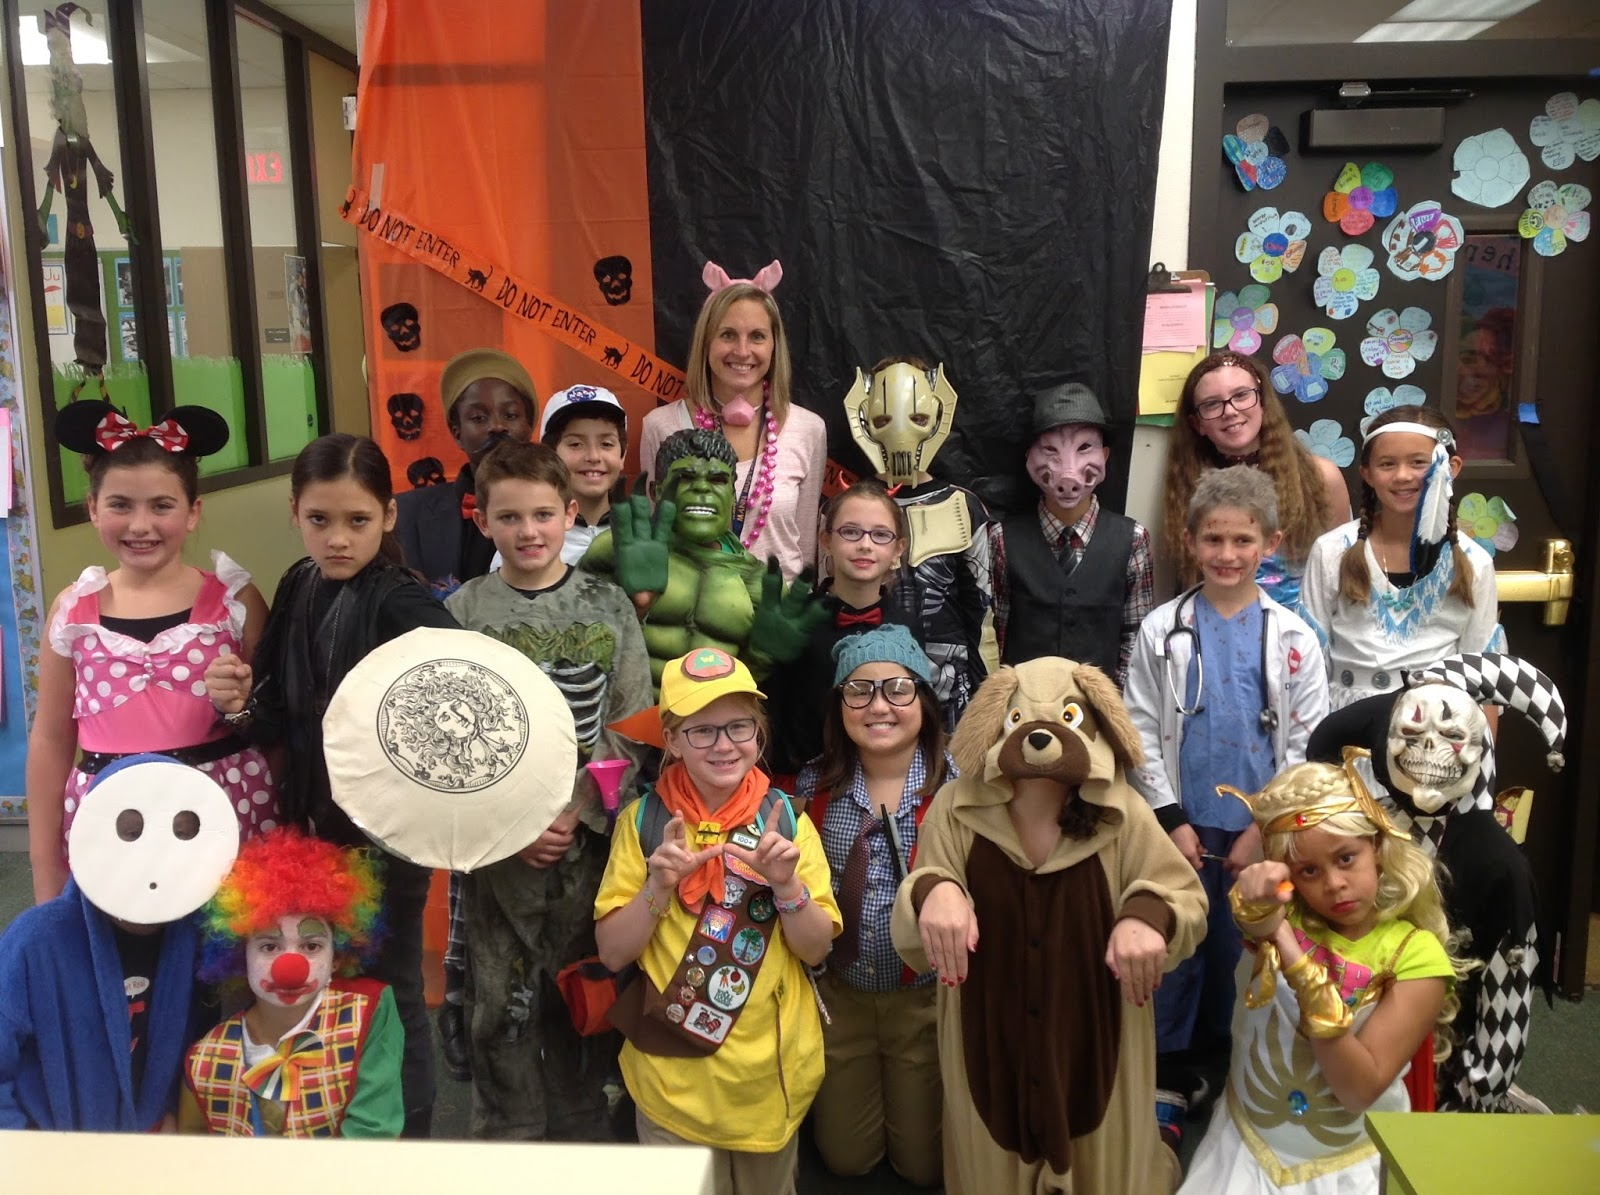 Mrs Diviacchi S 4th Grade Blog Halloween Party